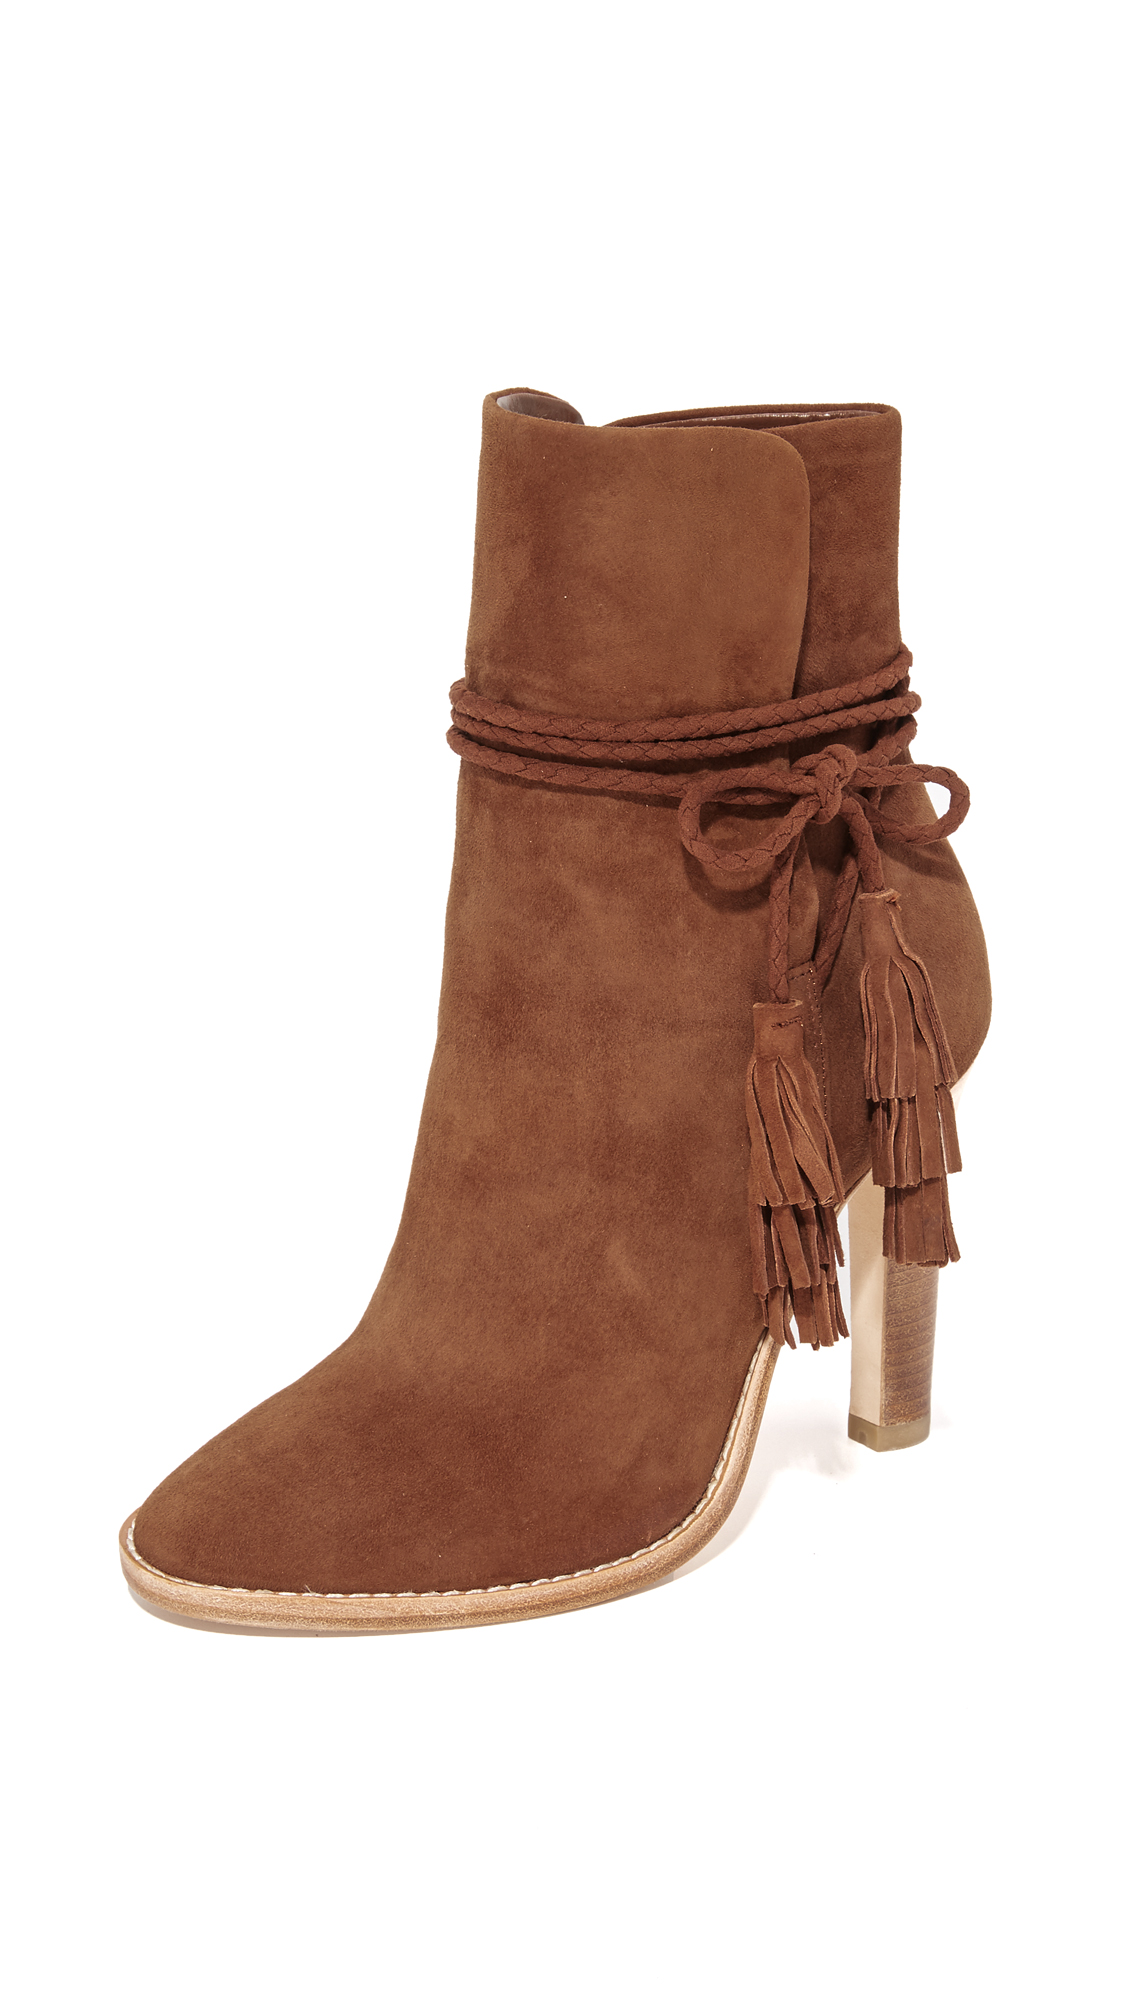 Joie Chap Tassel Booties - Chestnut at Shopbop